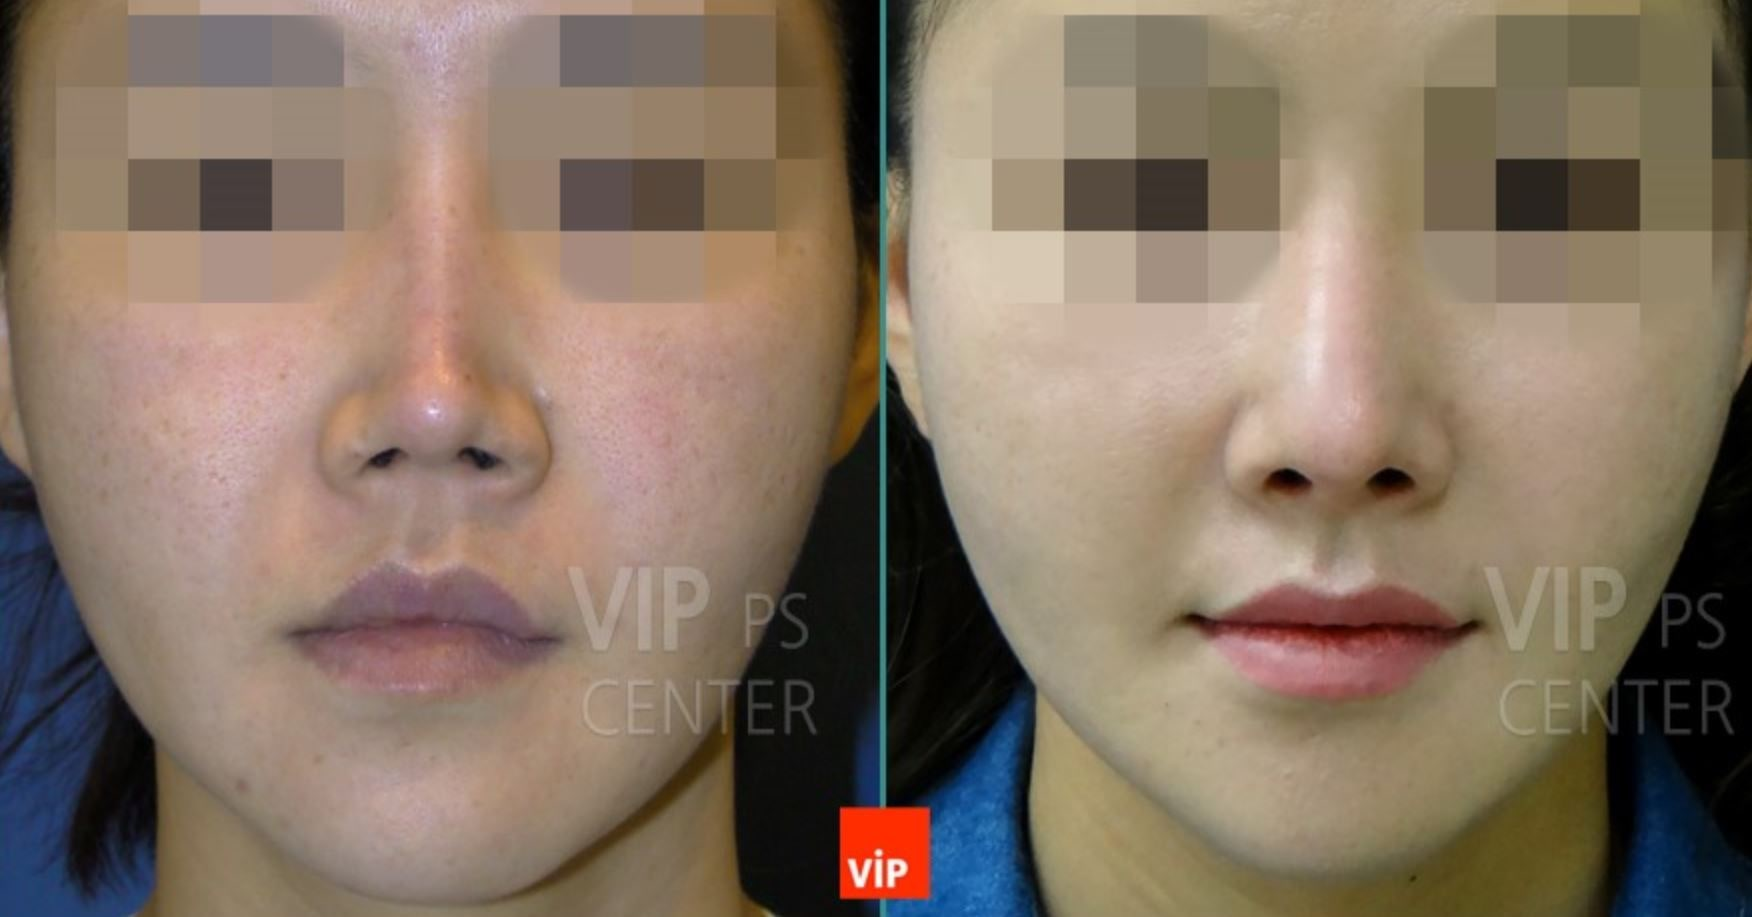 Revision Rhinoplasty Before and After(Deformity)